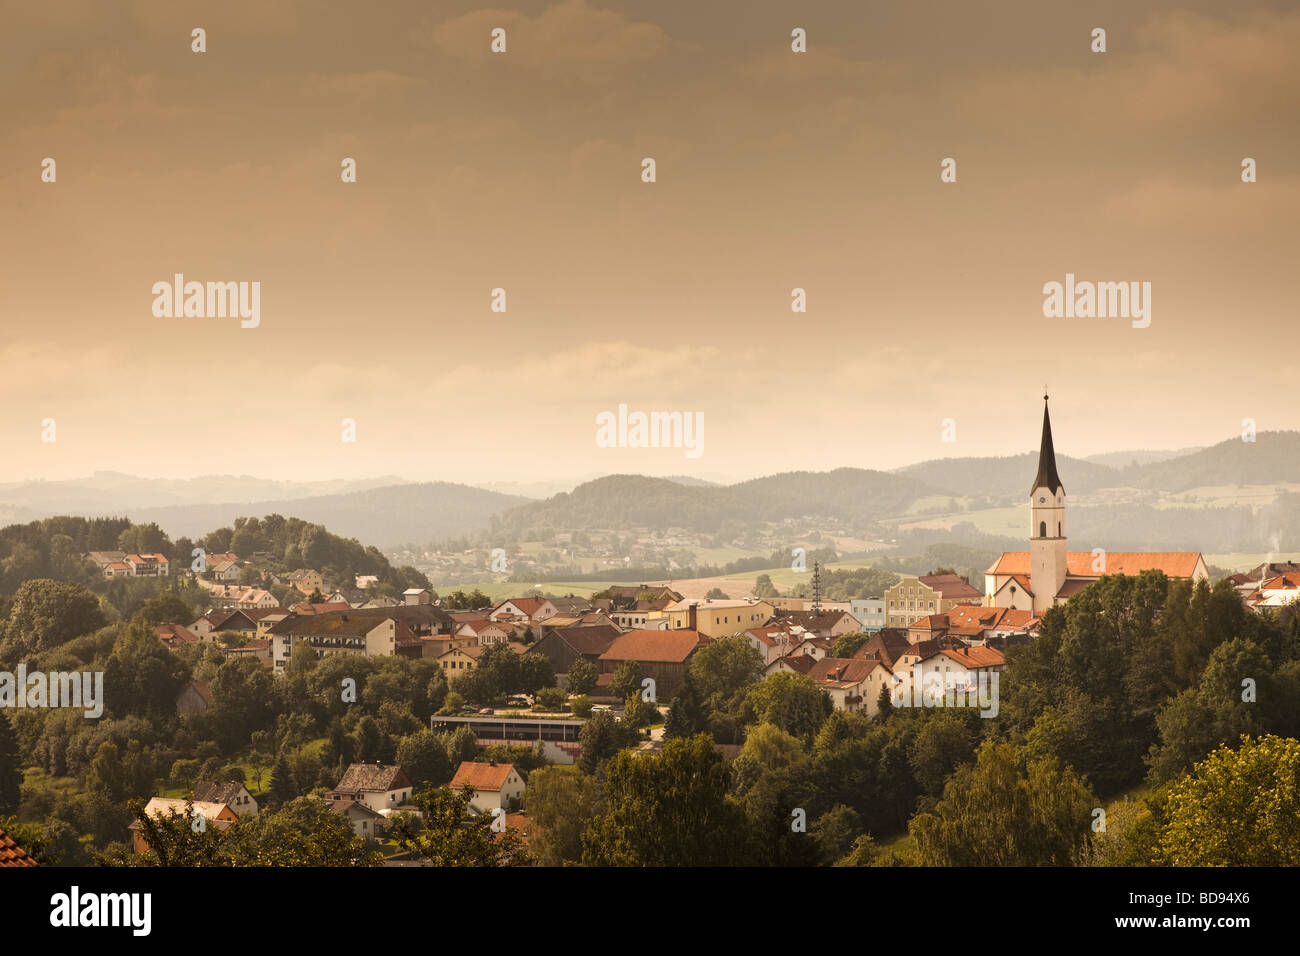 Town of Schonberg in the Bavarian Forest National Park, Bayerischer Wald or Bayerwald, Lower Bavaria, Germany, Europe Stock Photo